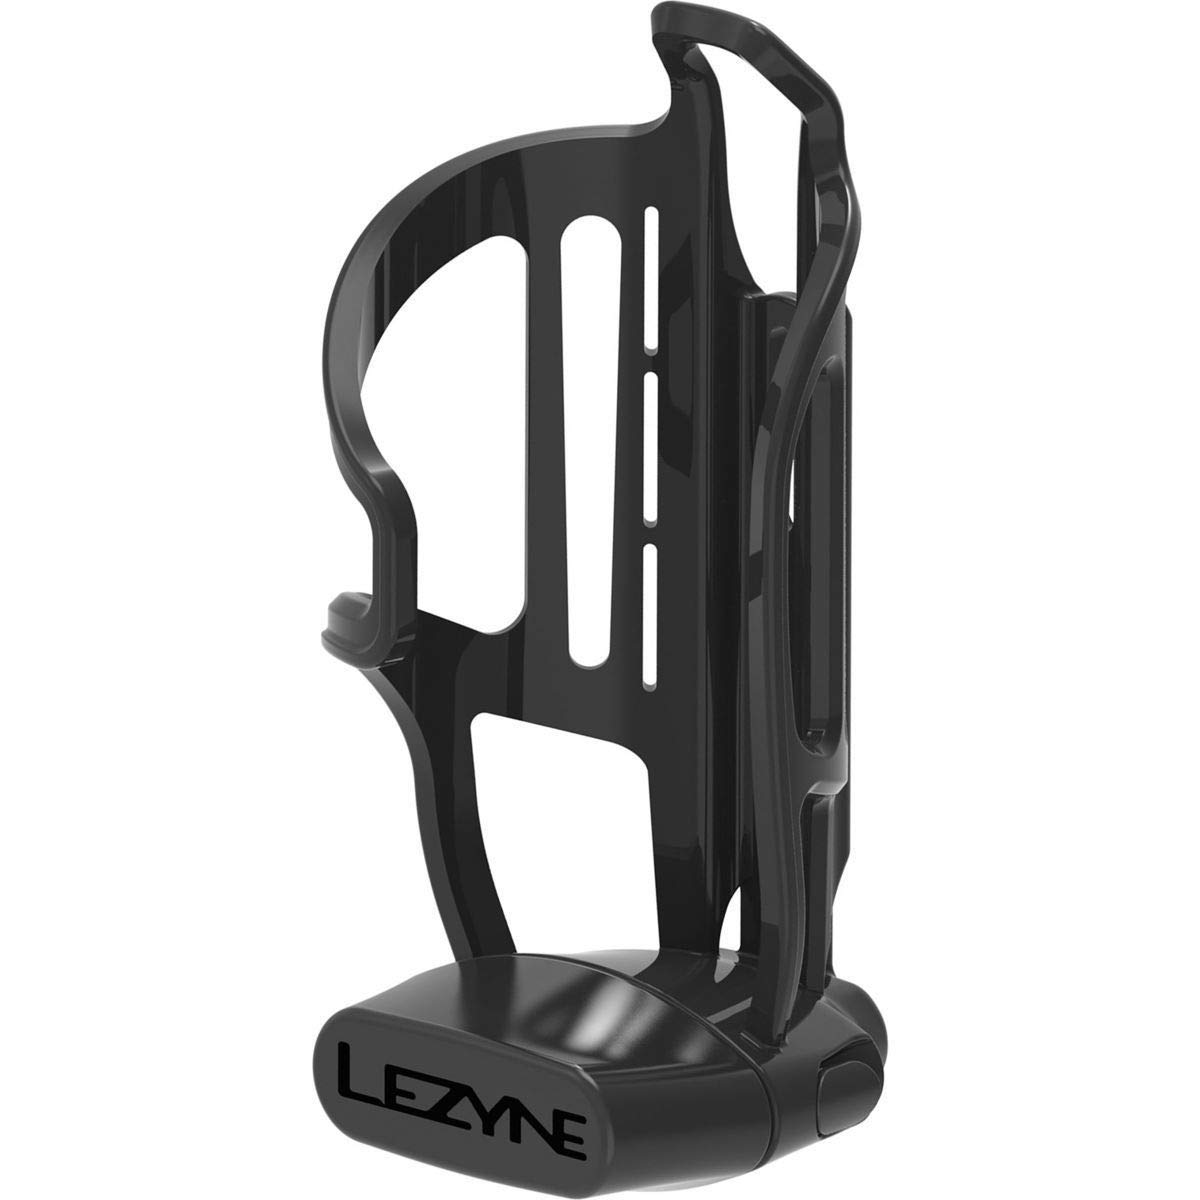 LEZYNE Drive Loaded Flow Storage Cage Black, Loaded with CO2